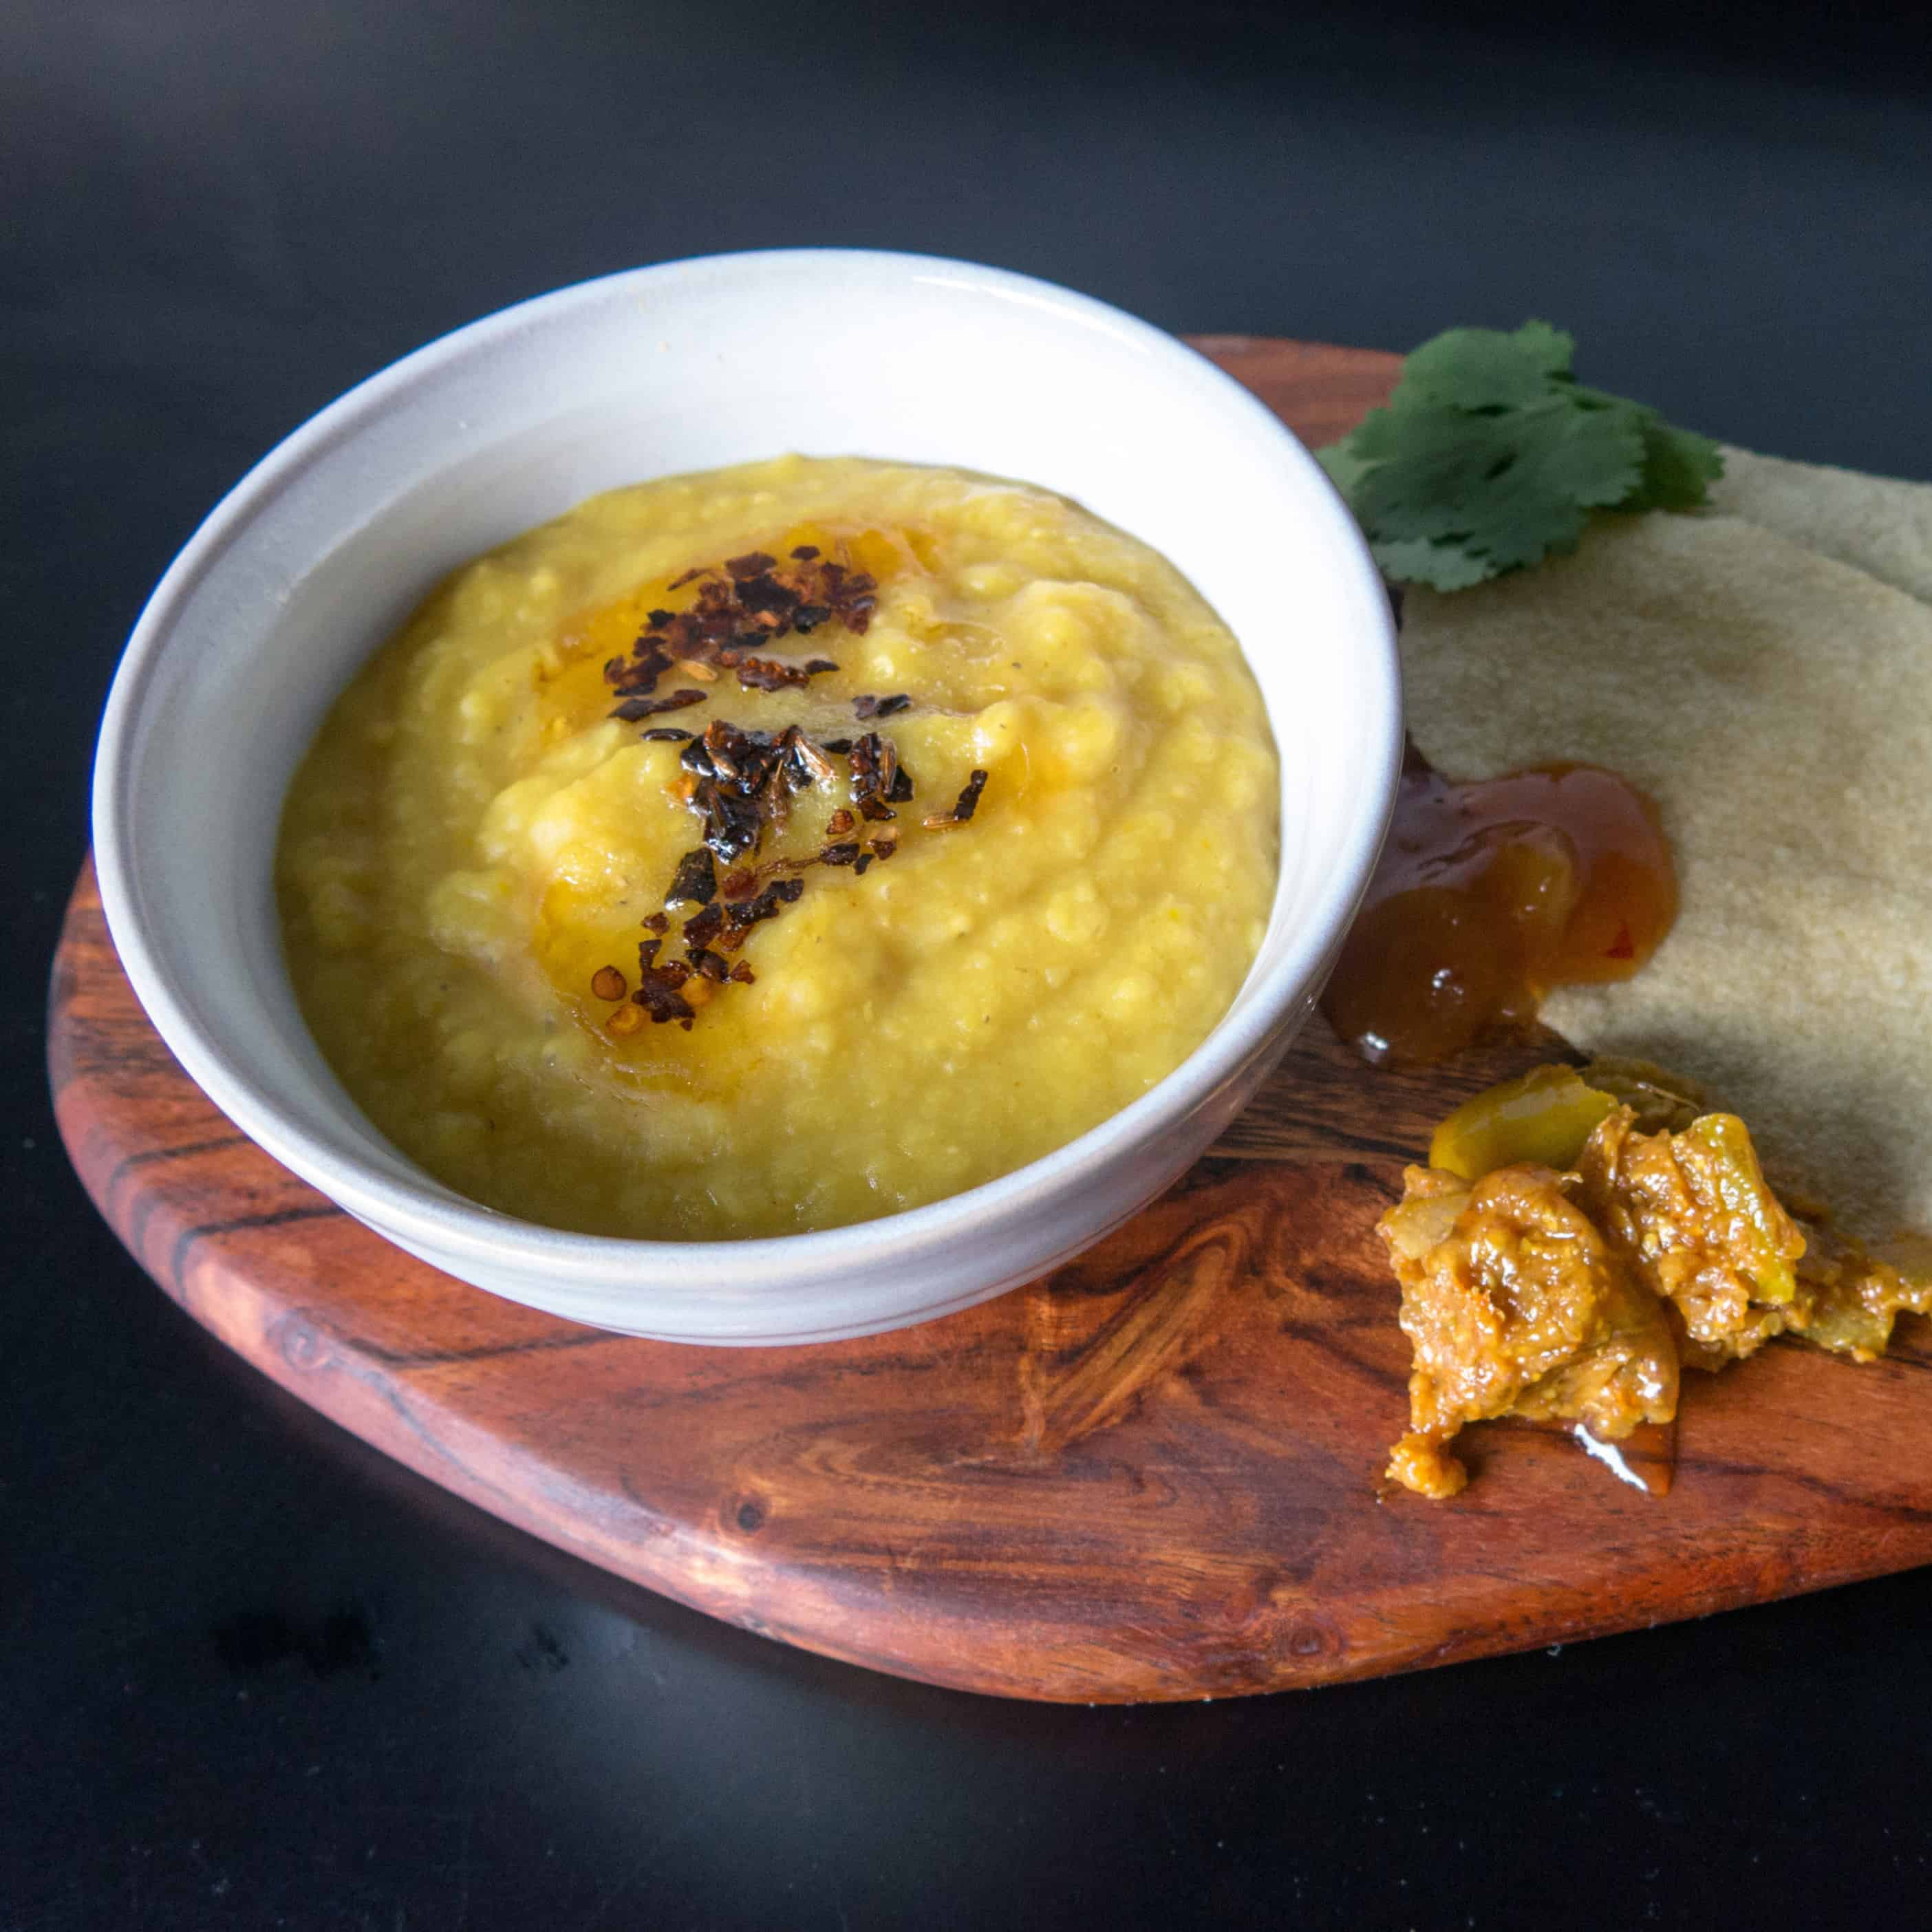 Lentil dahl. Gluten free, vegan, onion free, garlic free. Served with poppadoms and pickle